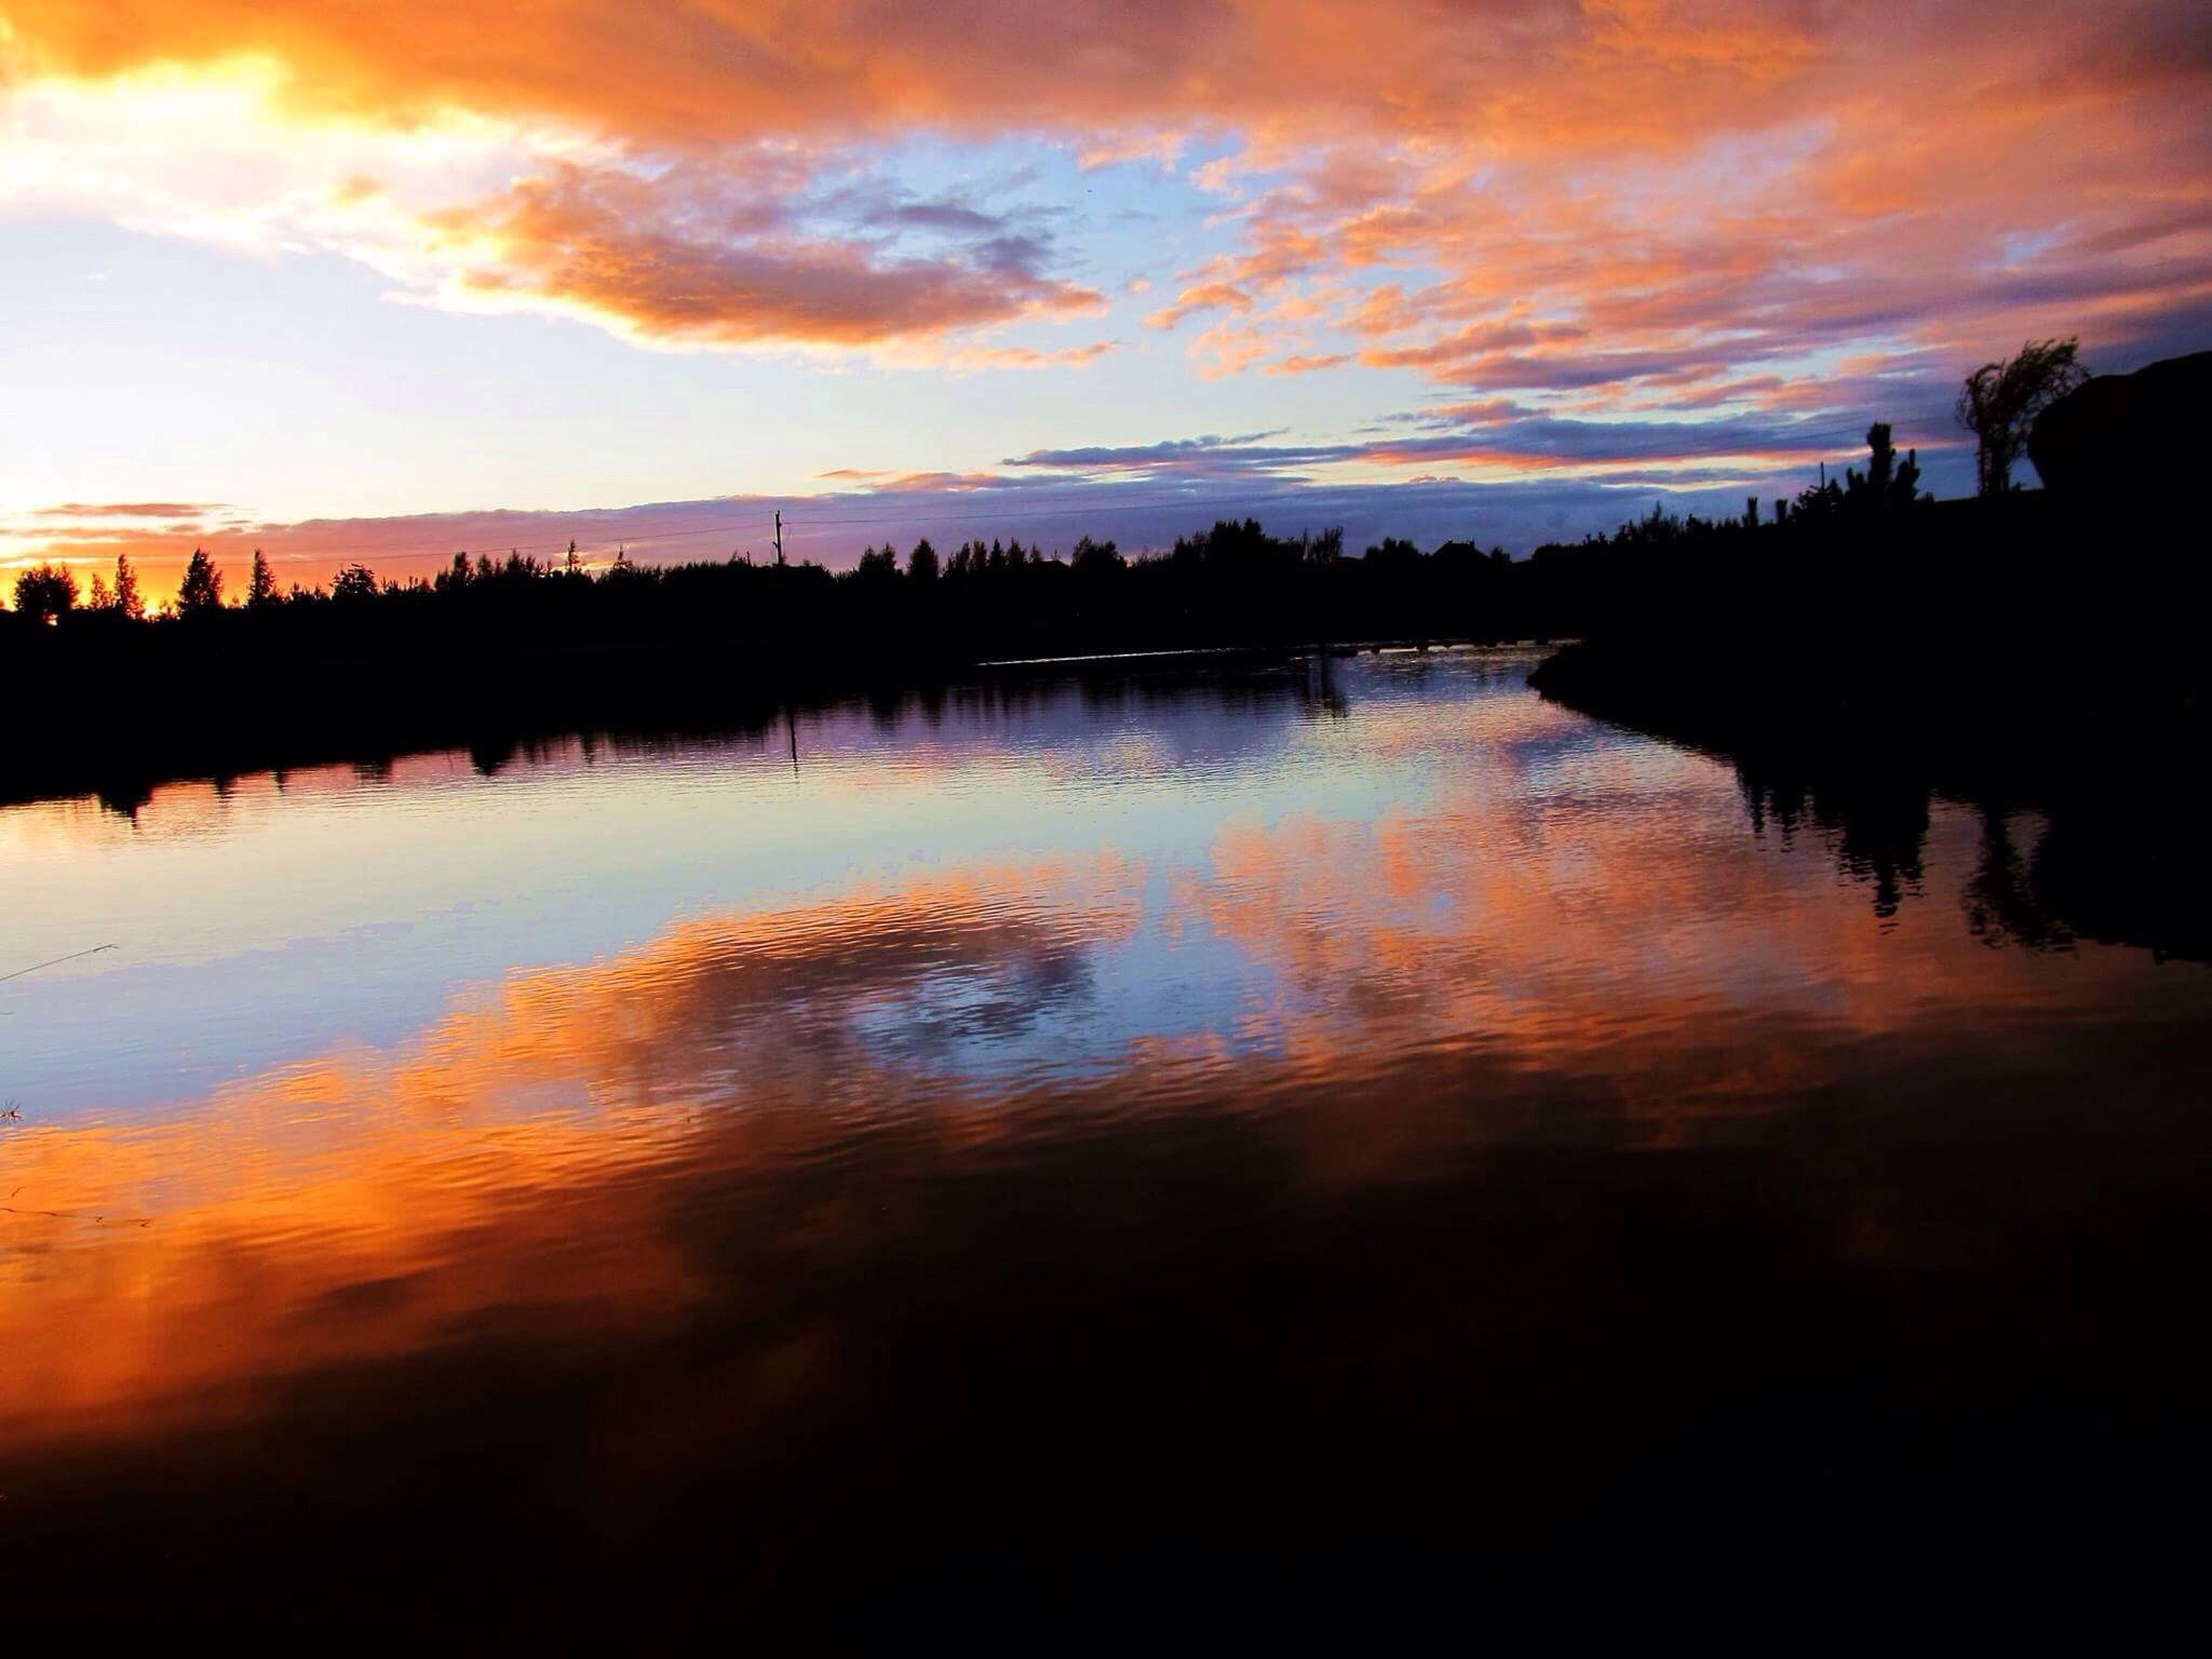 water, sunset, reflection, tranquil scene, scenics, silhouette, tranquility, lake, beauty in nature, idyllic, calm, sky, rippled, cloud, orange color, nature, cloud - sky, waterfront, atmospheric mood, atmosphere, majestic, dark, non-urban scene, moody sky, outdoors, dramatic sky, water surface, blue, outline, remote, vibrant color, countryside